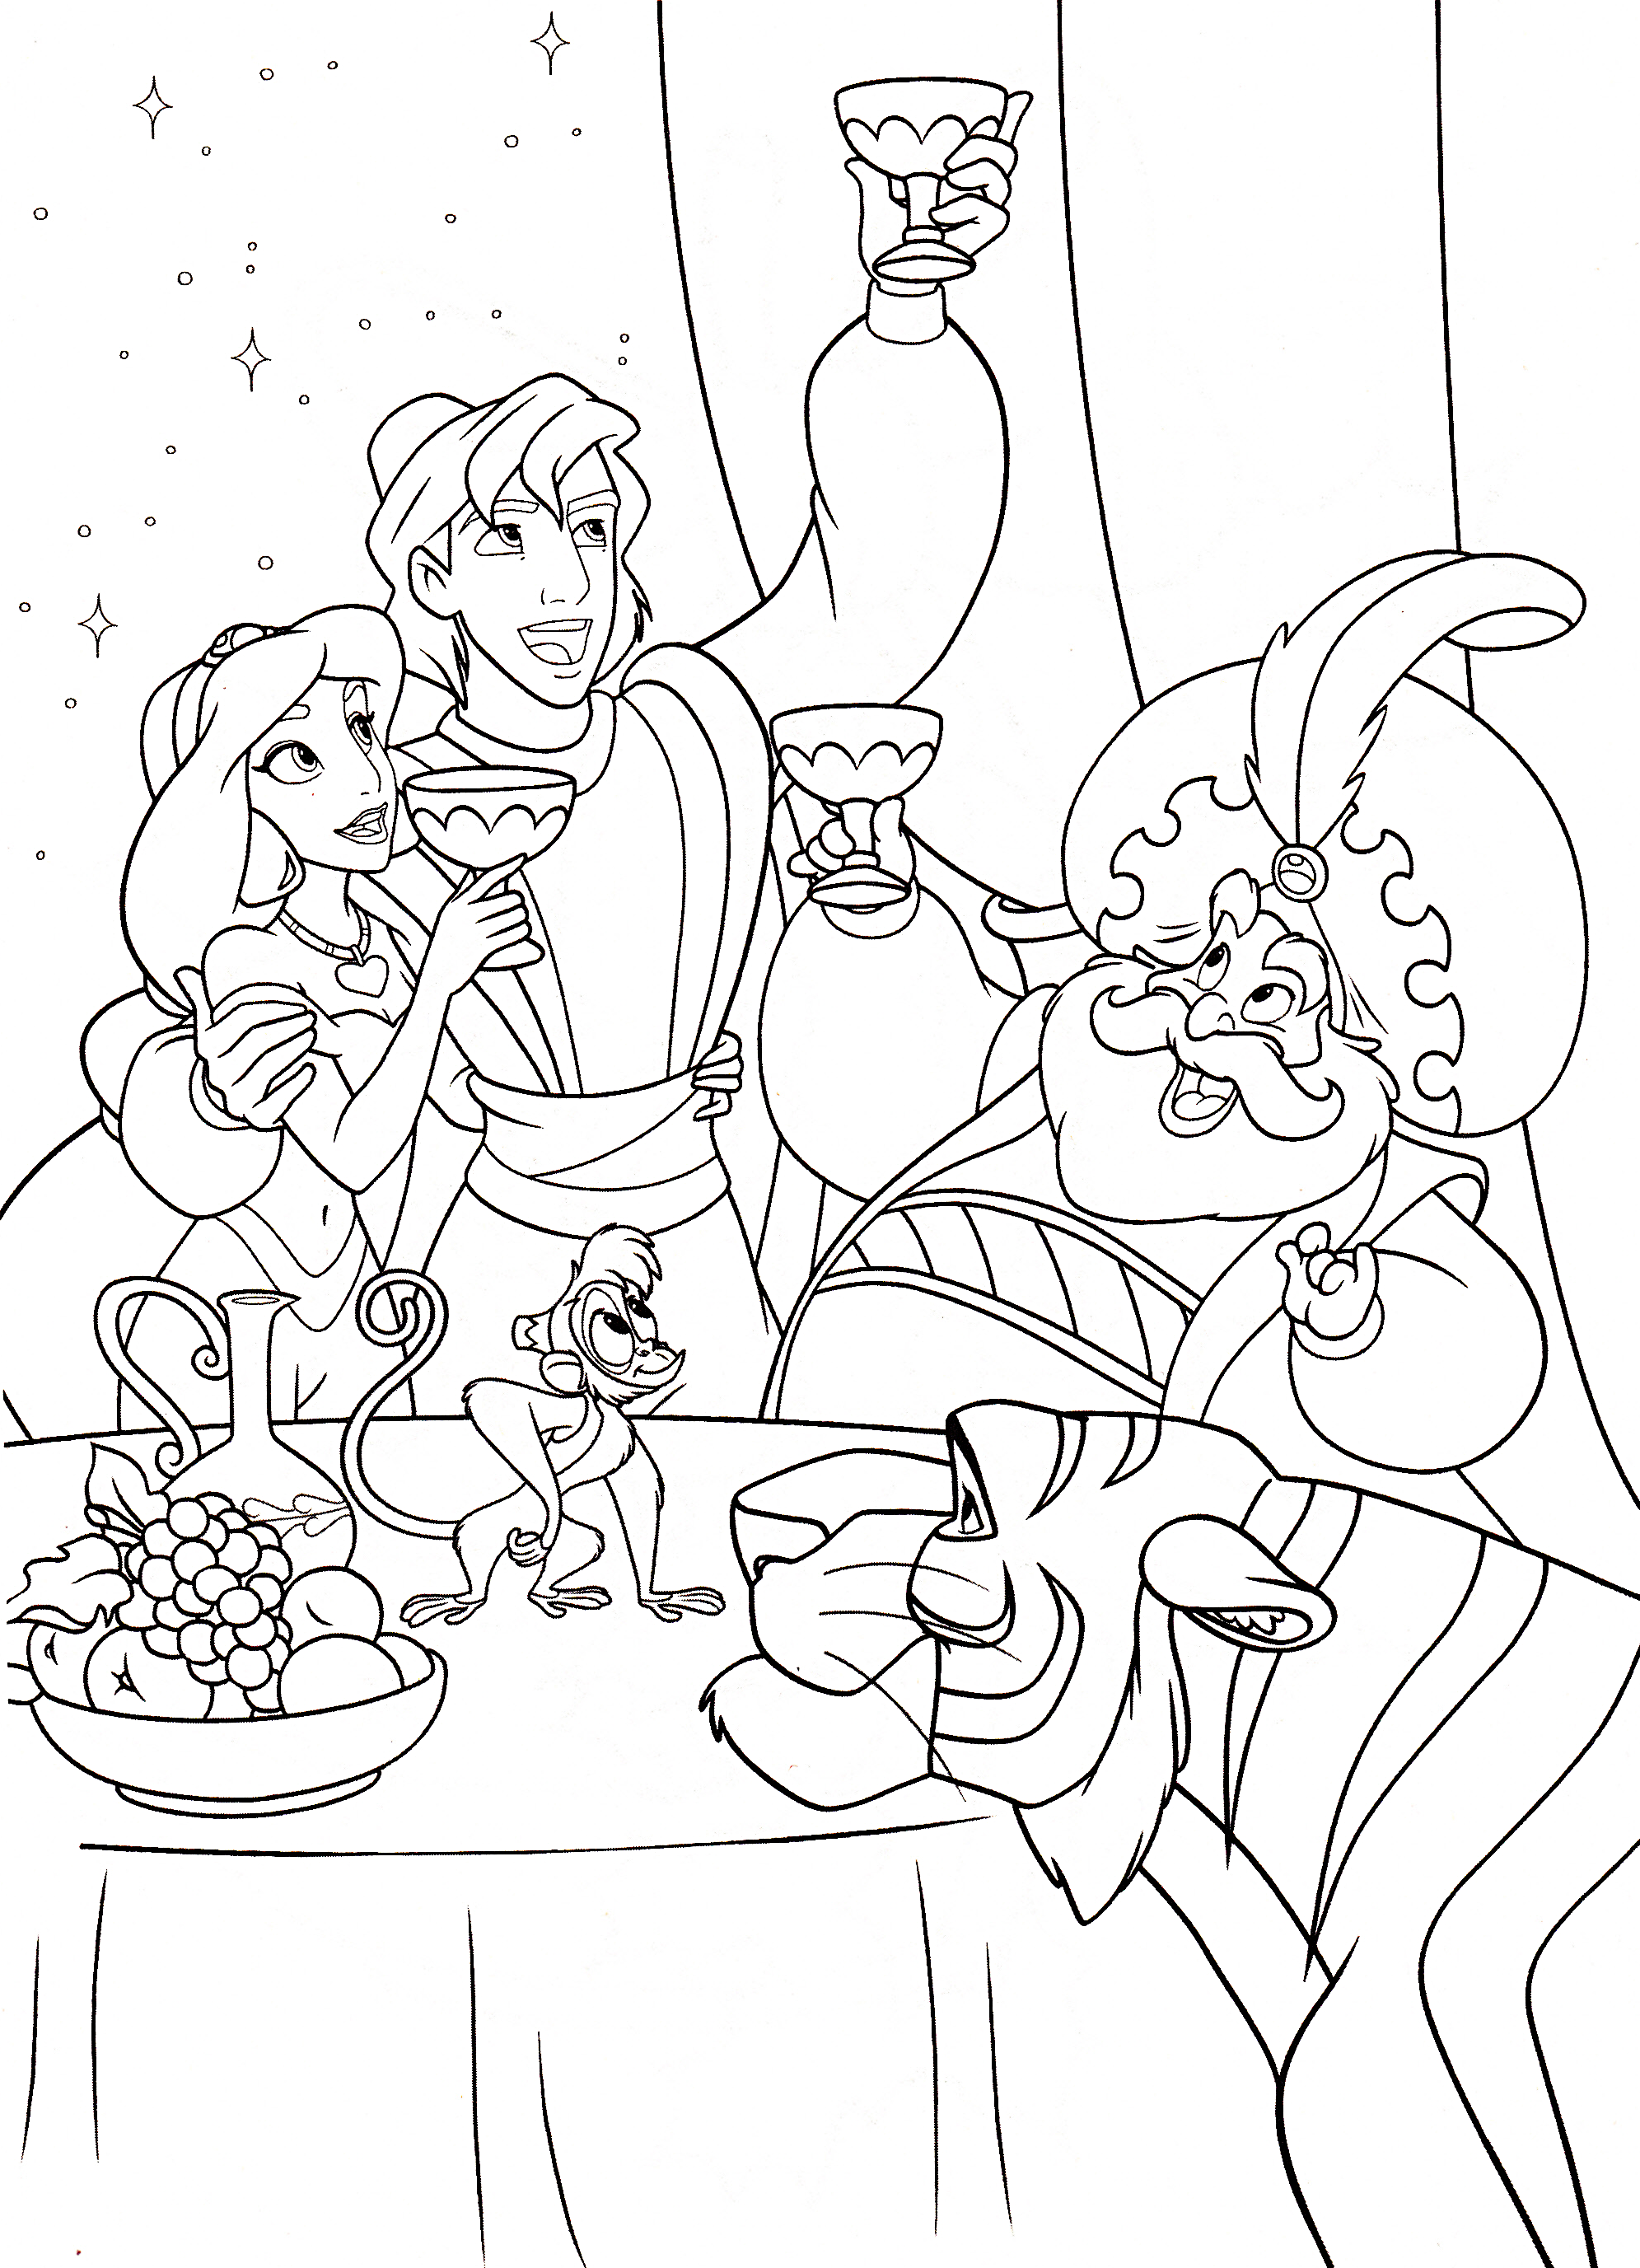 Aladdin Coloring Page - abu | All Kids Network | 2753x1991